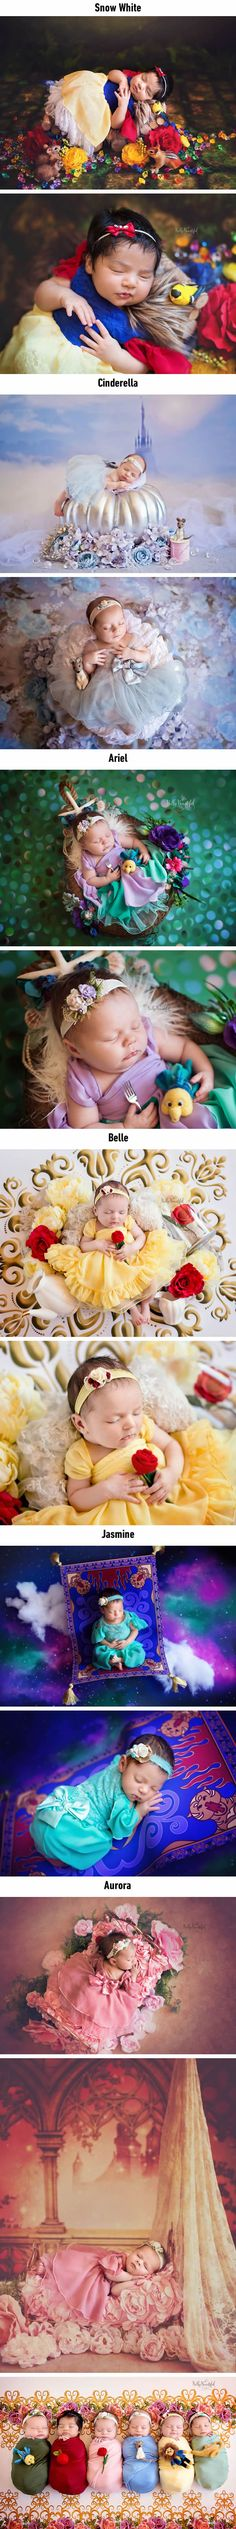 Adorable Photos Of Newborns Dressed As Disney Princesses - 9GAG